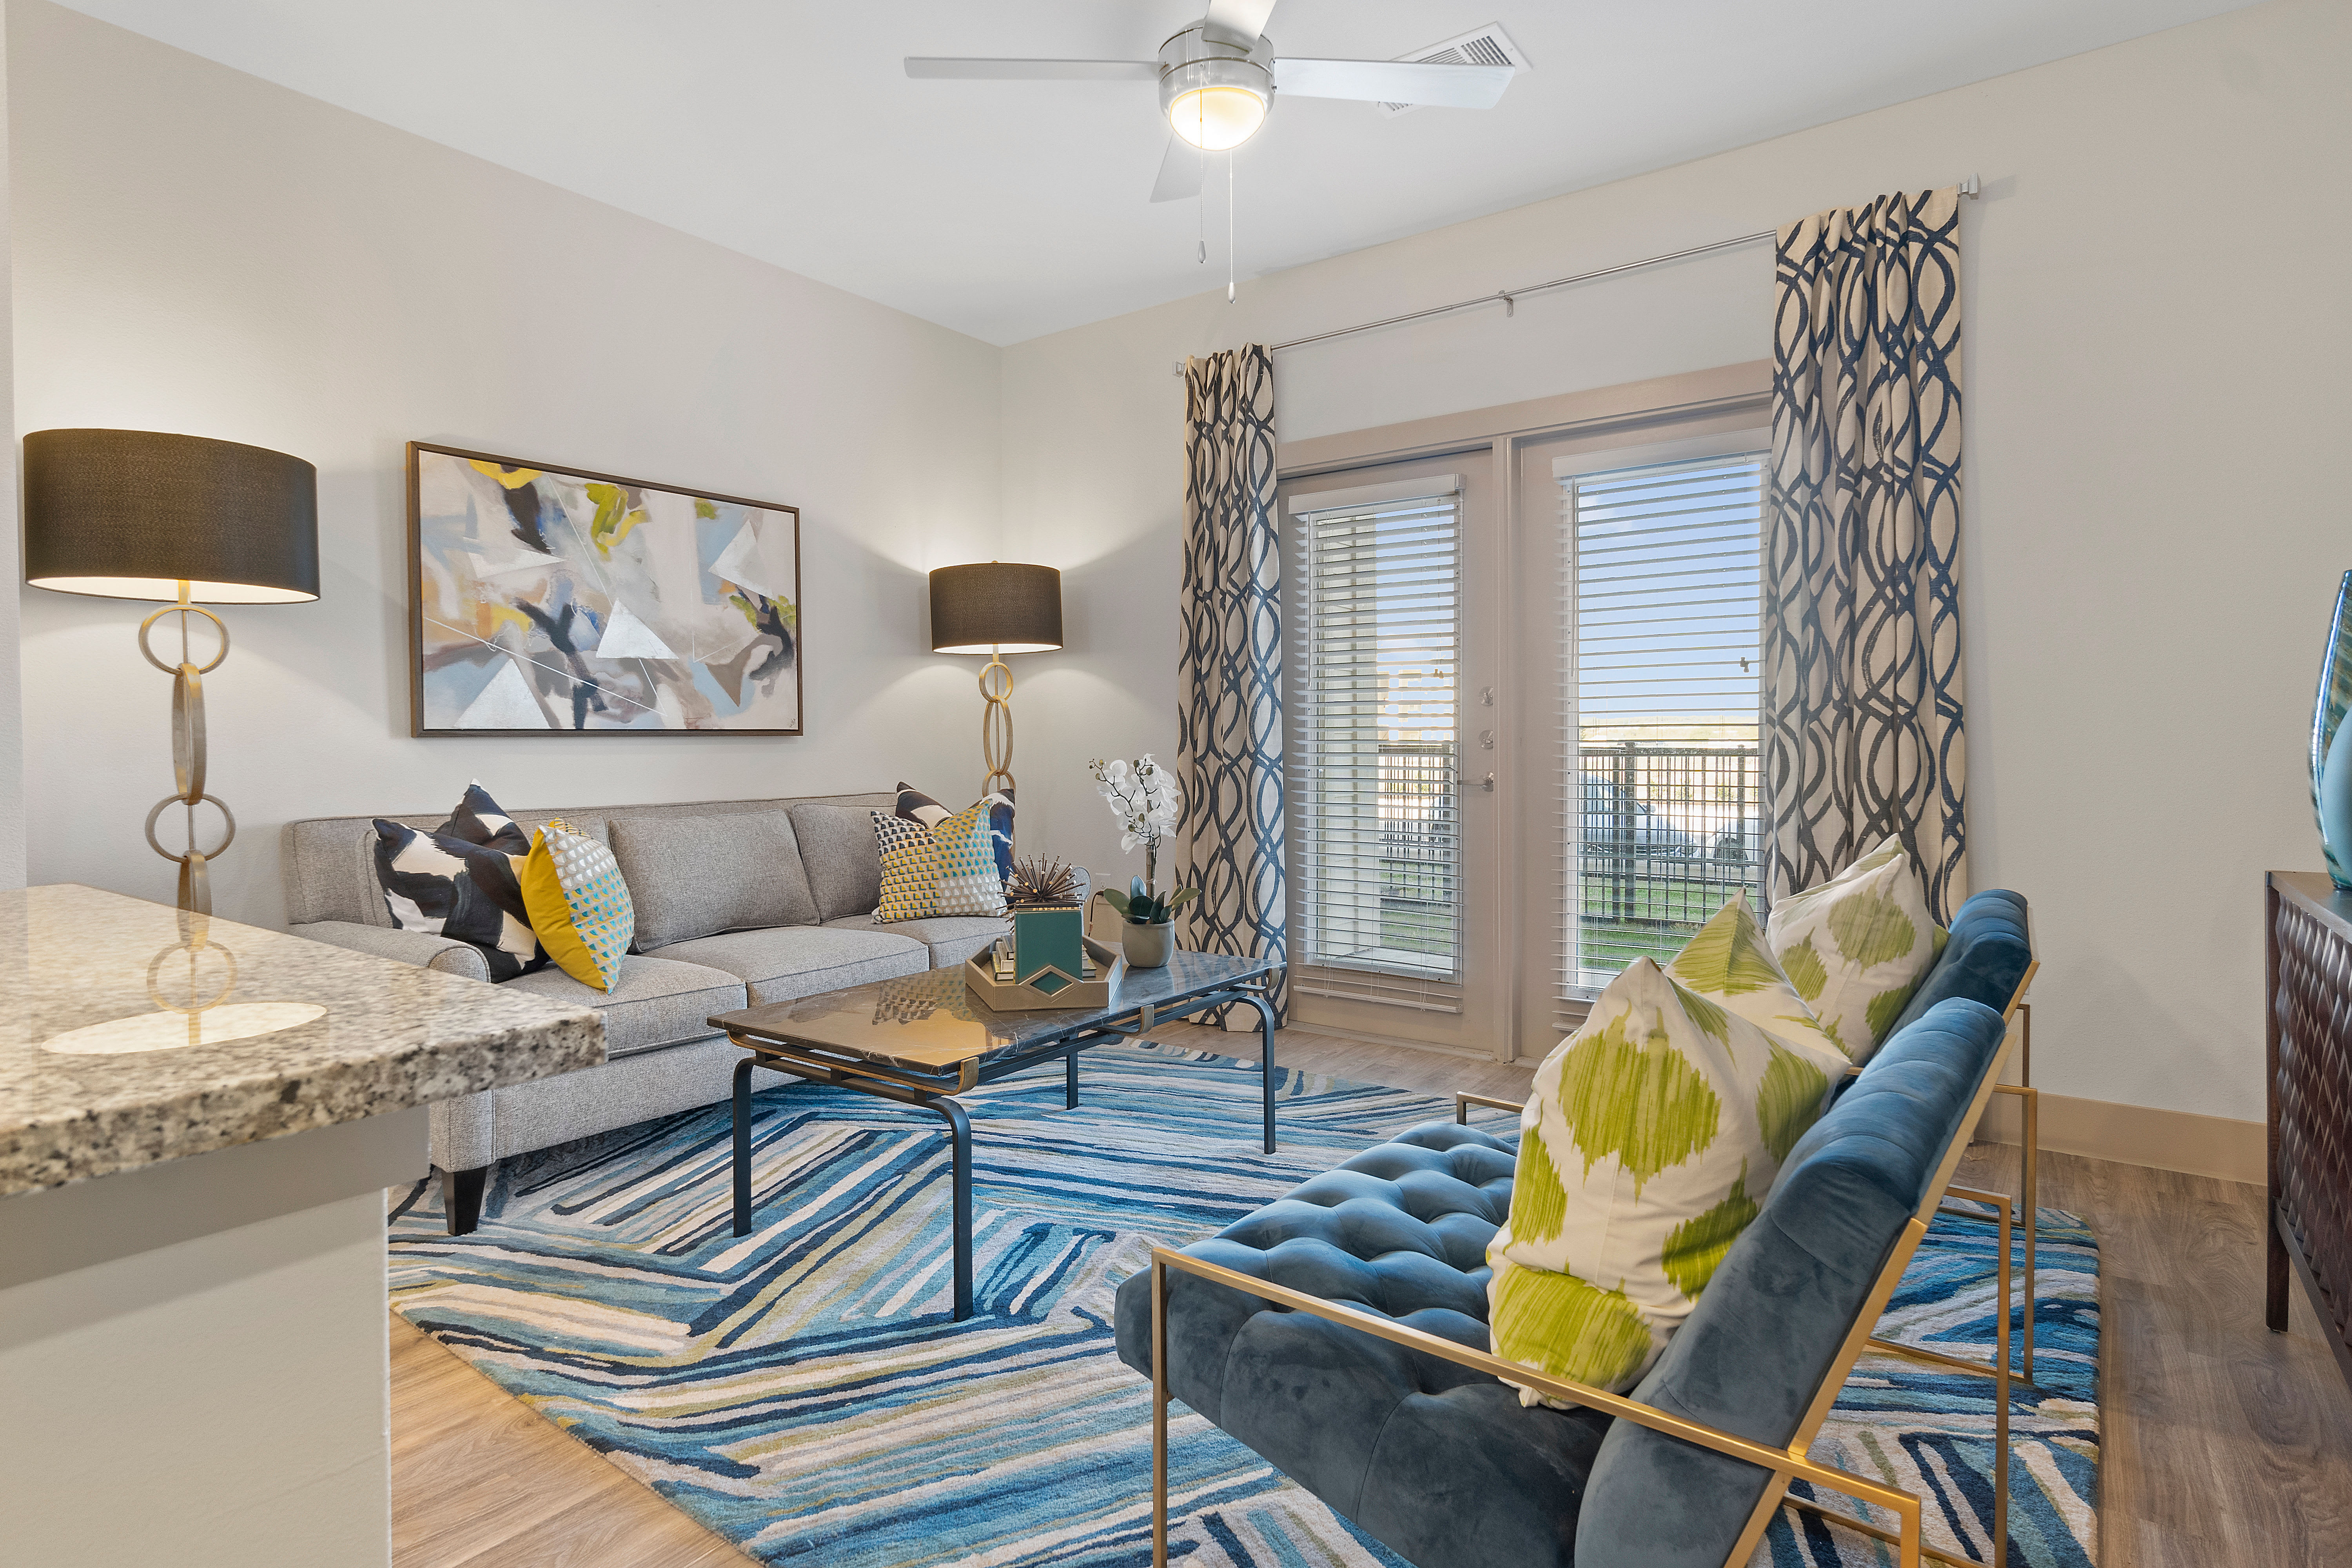 Living room with a large window at McCarty Commons in San Marcos, Texas